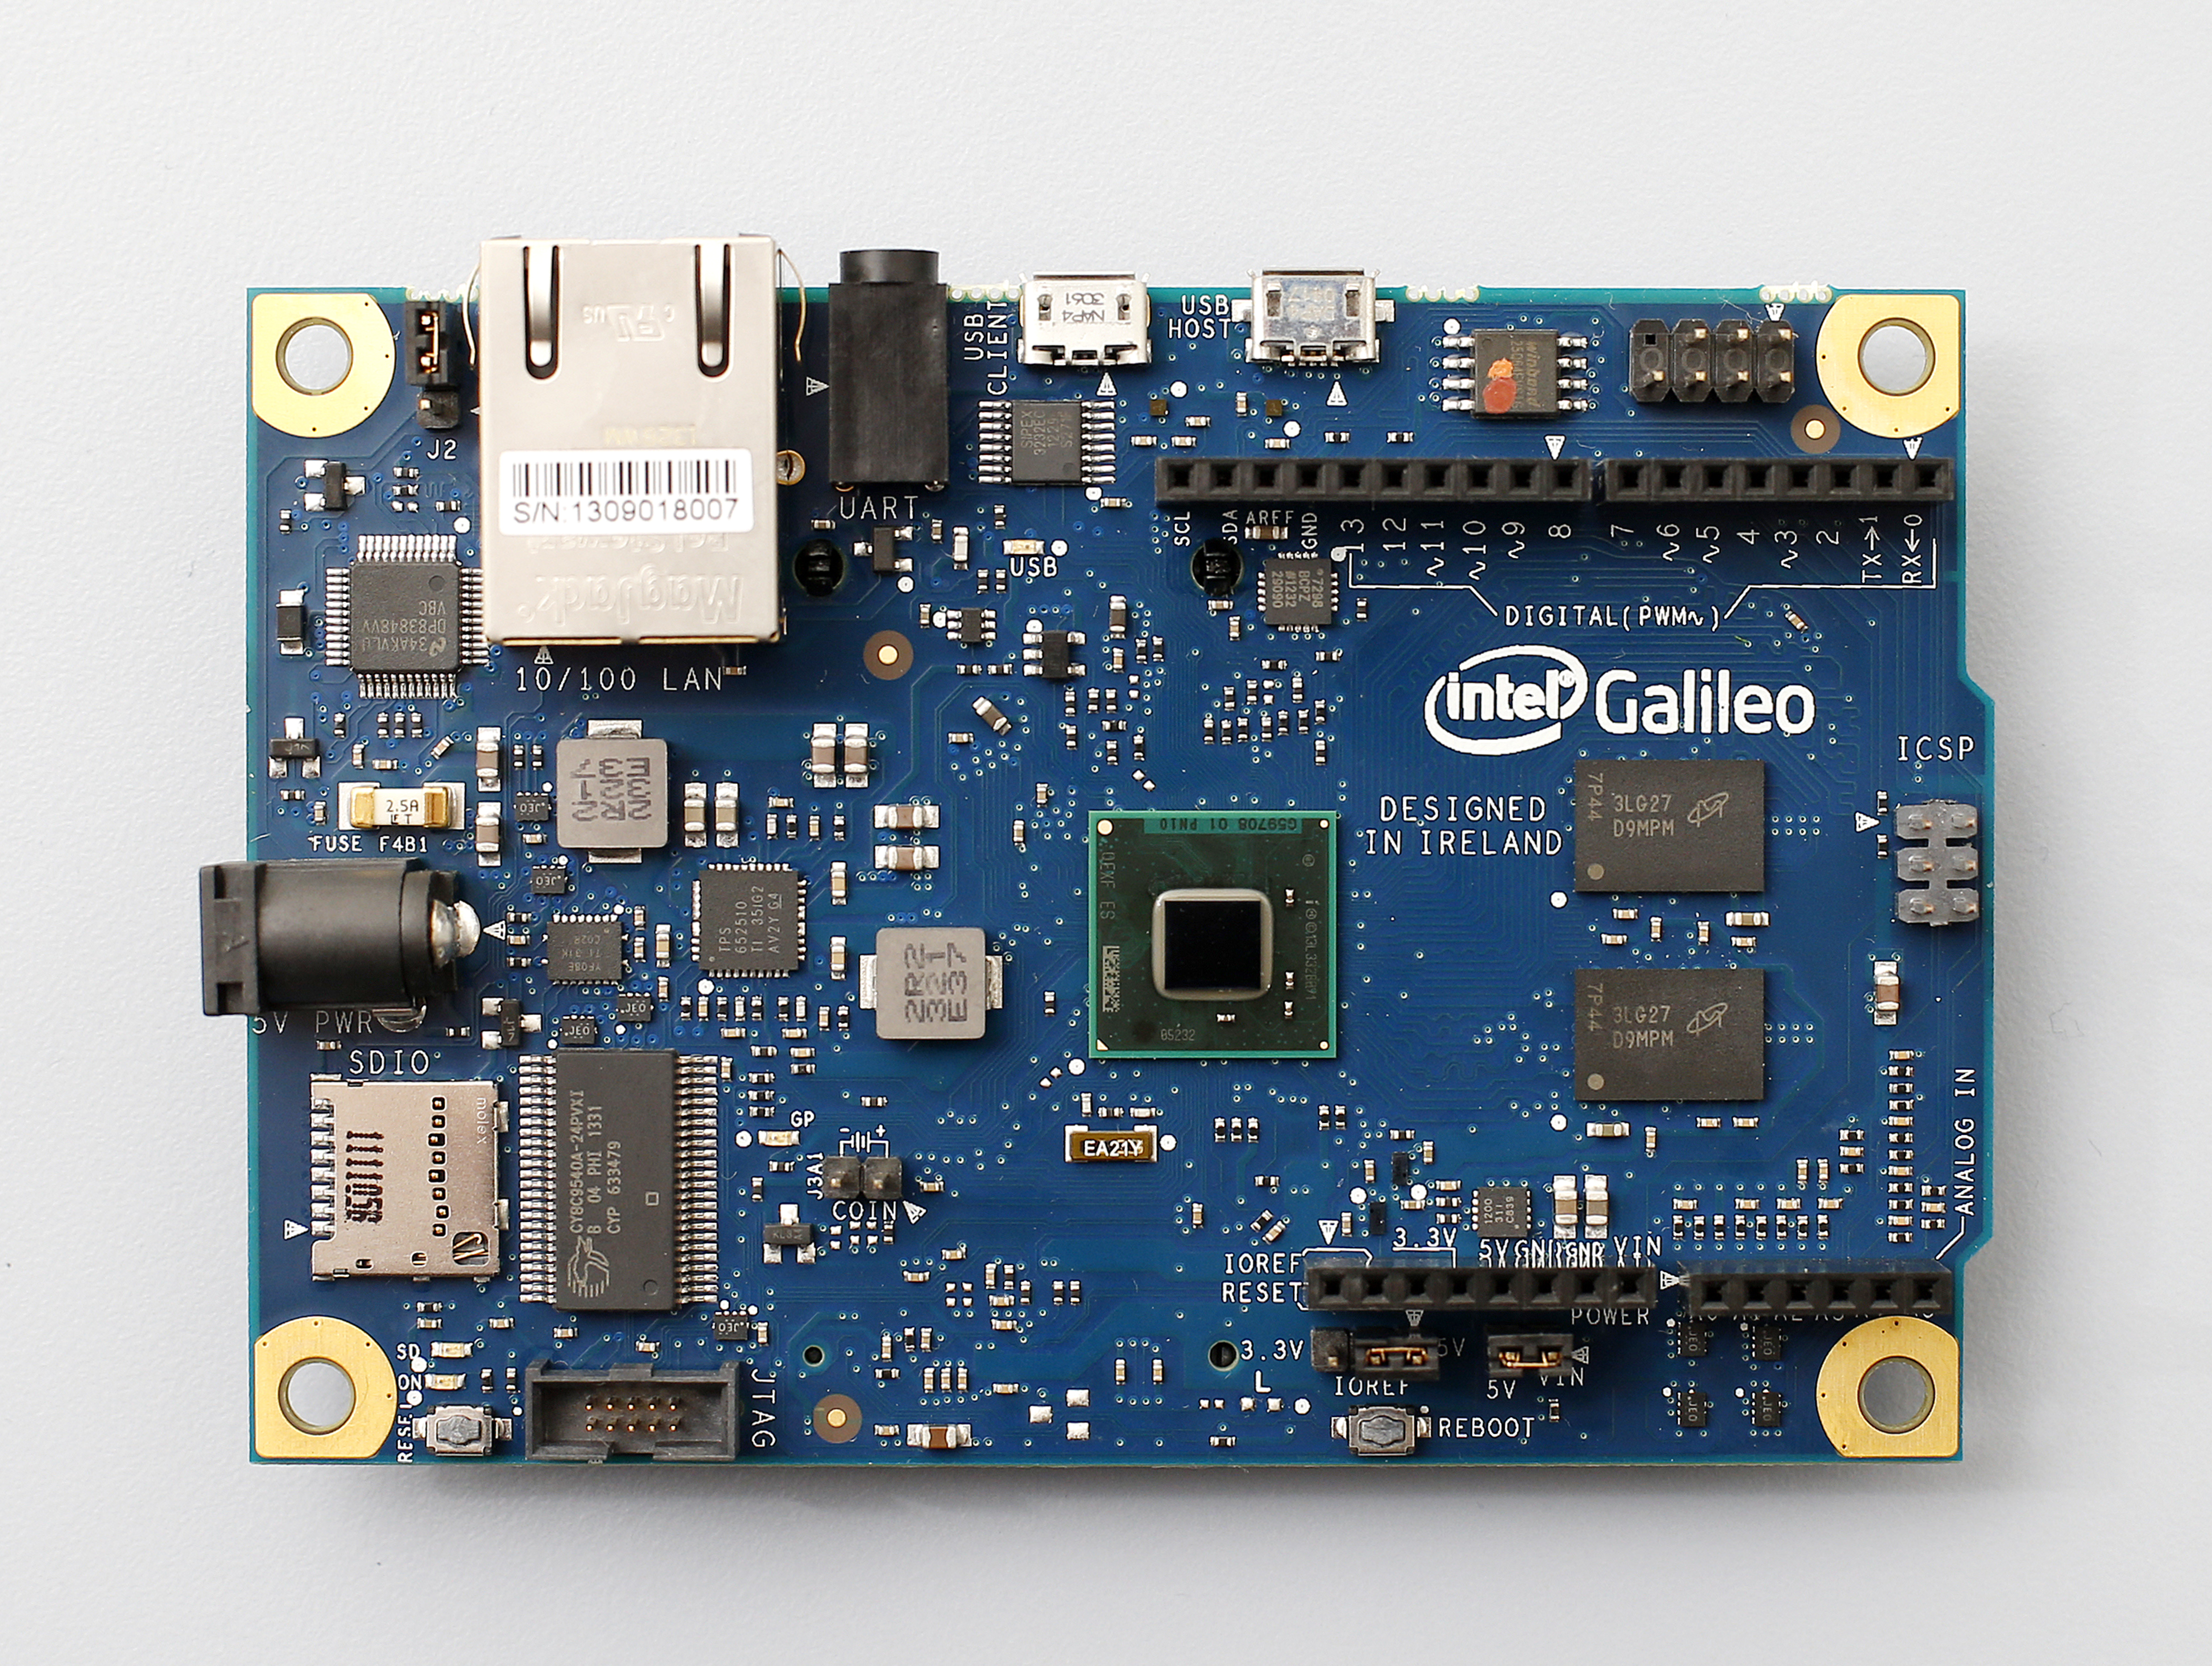 The Galileo board from Intel and Arduino